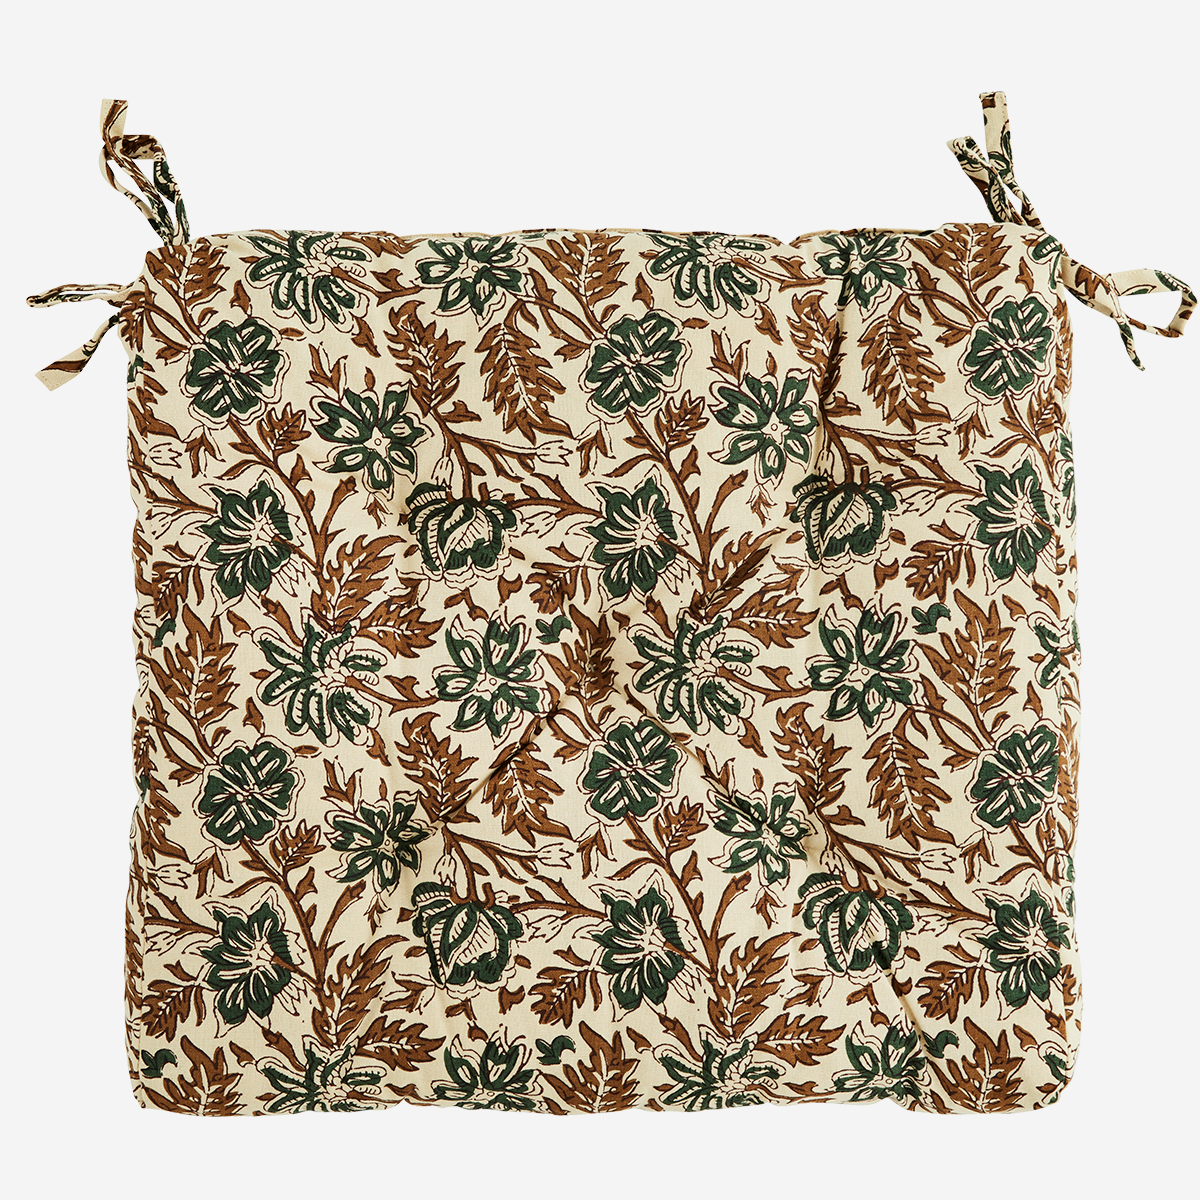 Printed cotton Seat Pad Cream/Brown/Green. - Madam Stoltz